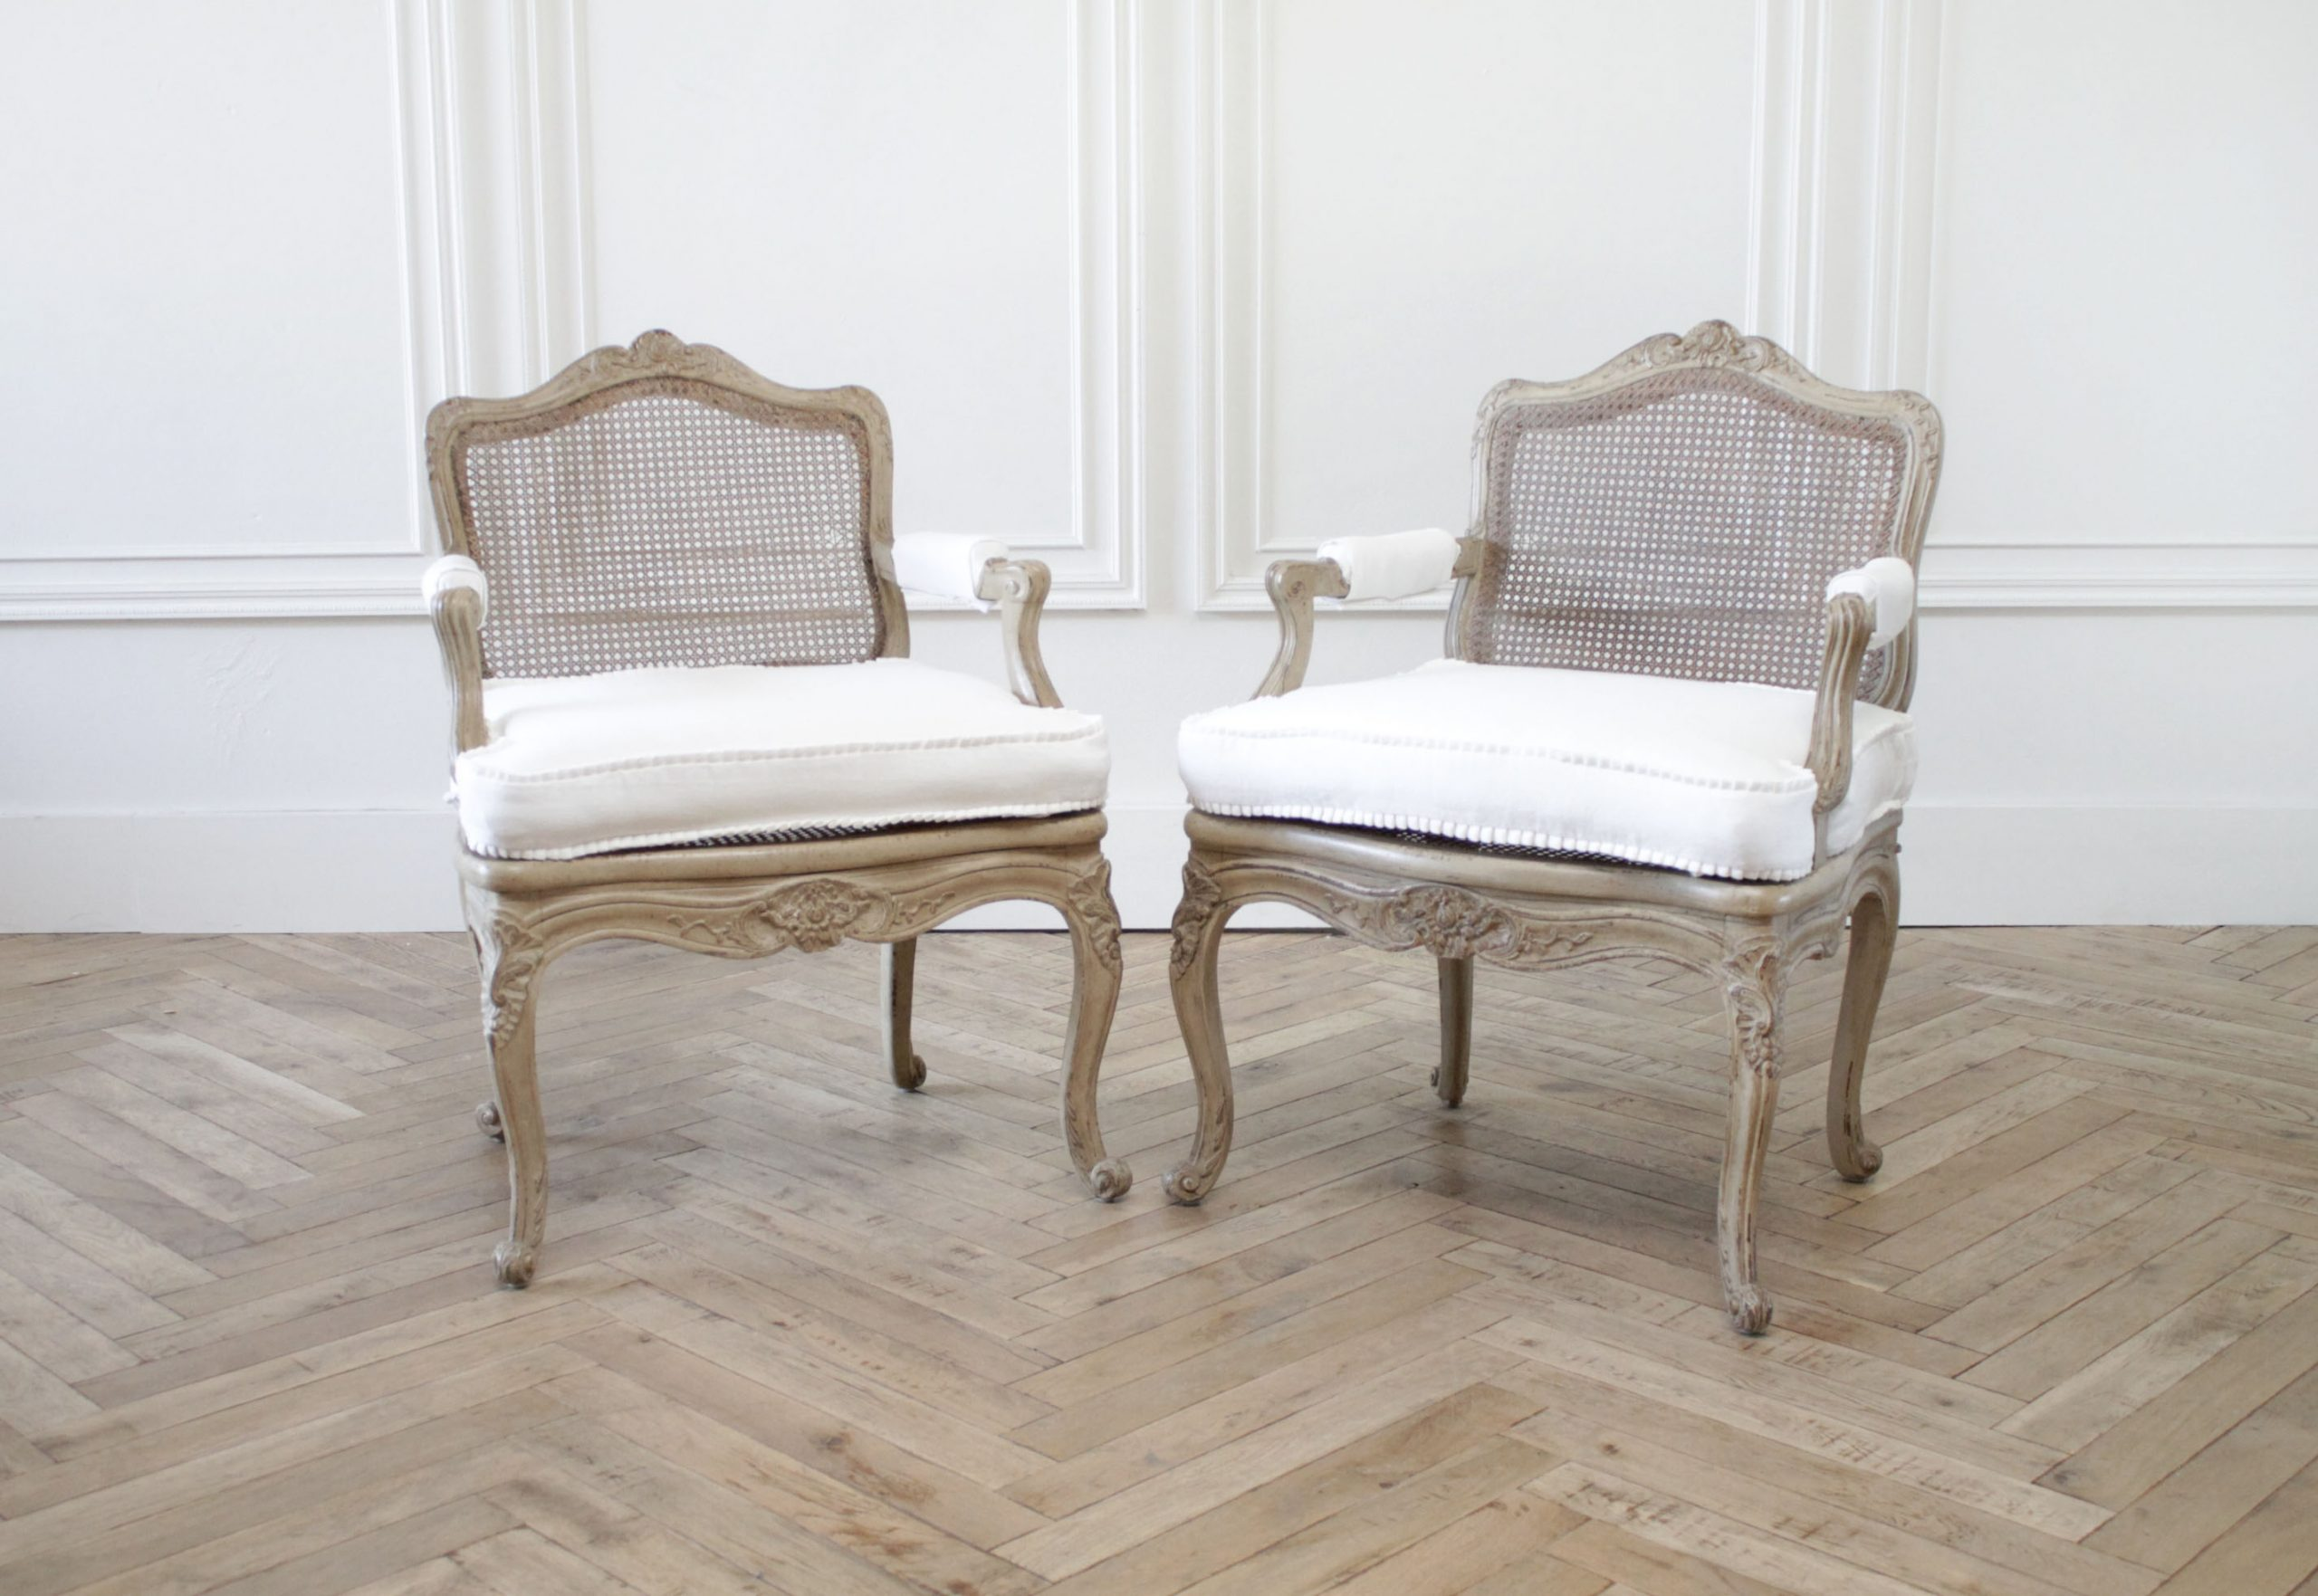 Pair of Antique French Arm Chairs in Original Painted Finish and White Linen